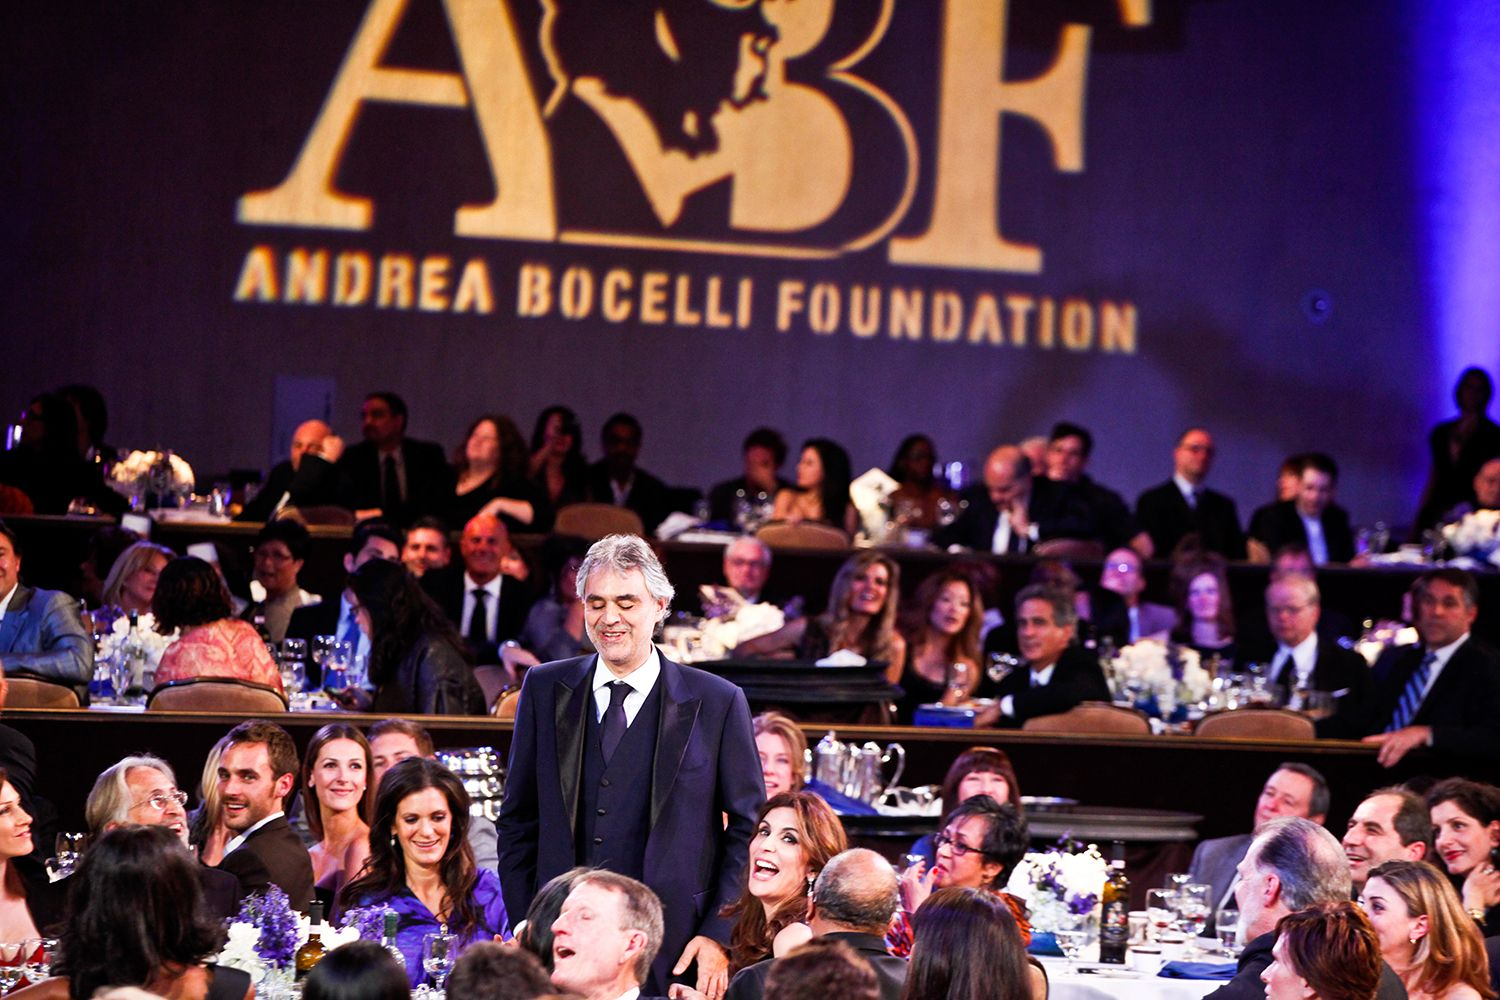 Lunch of the ABF - Andrea Bocelli